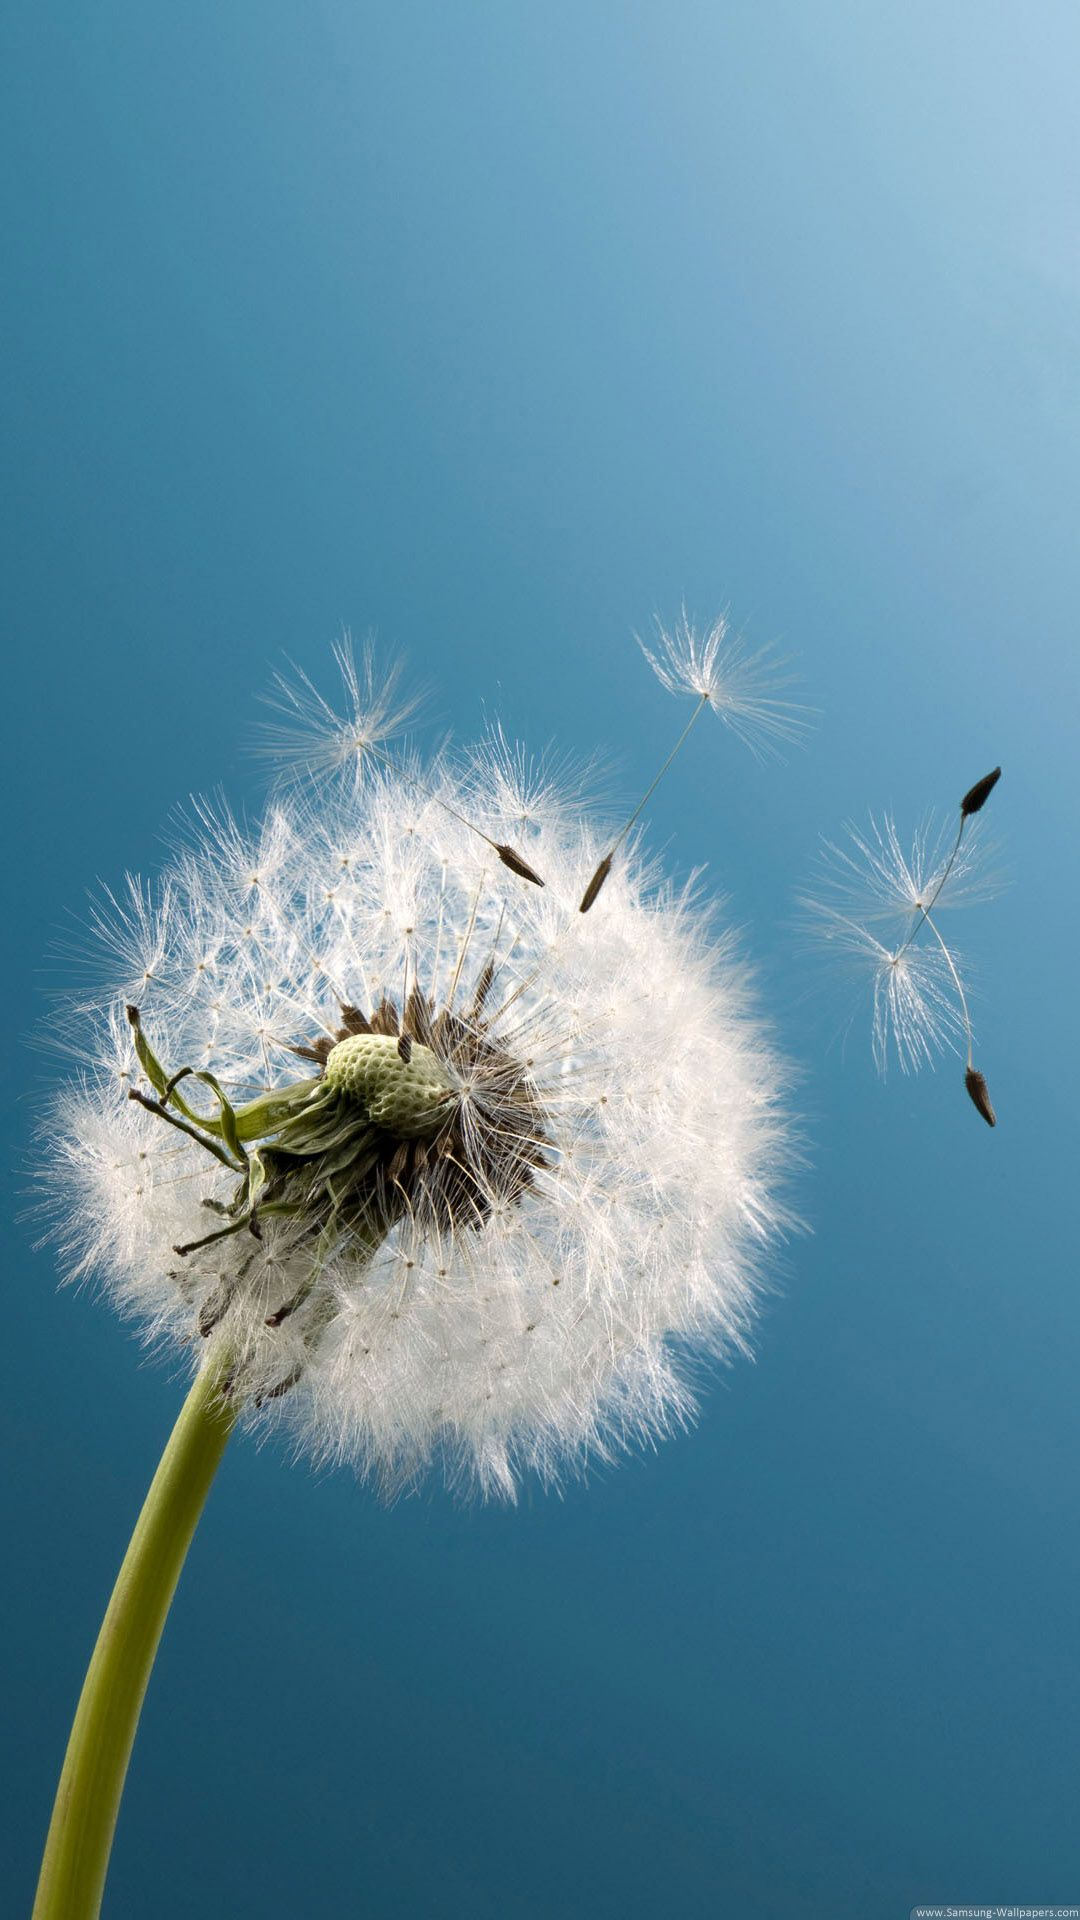 dandelion live wallpaper apk for iphone download android apk